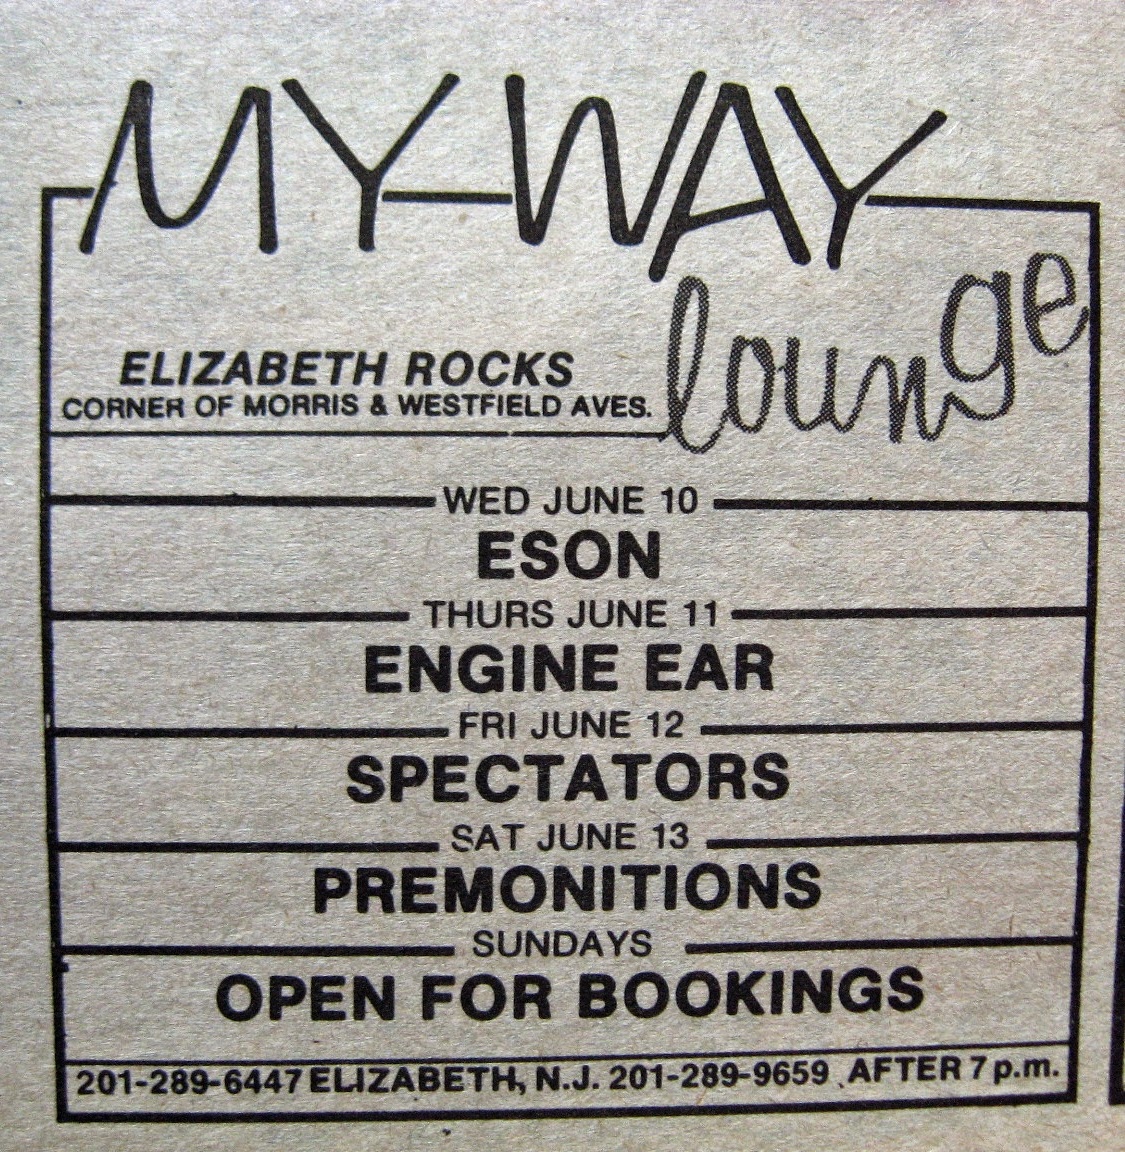 My Way Lounge band line up 1981